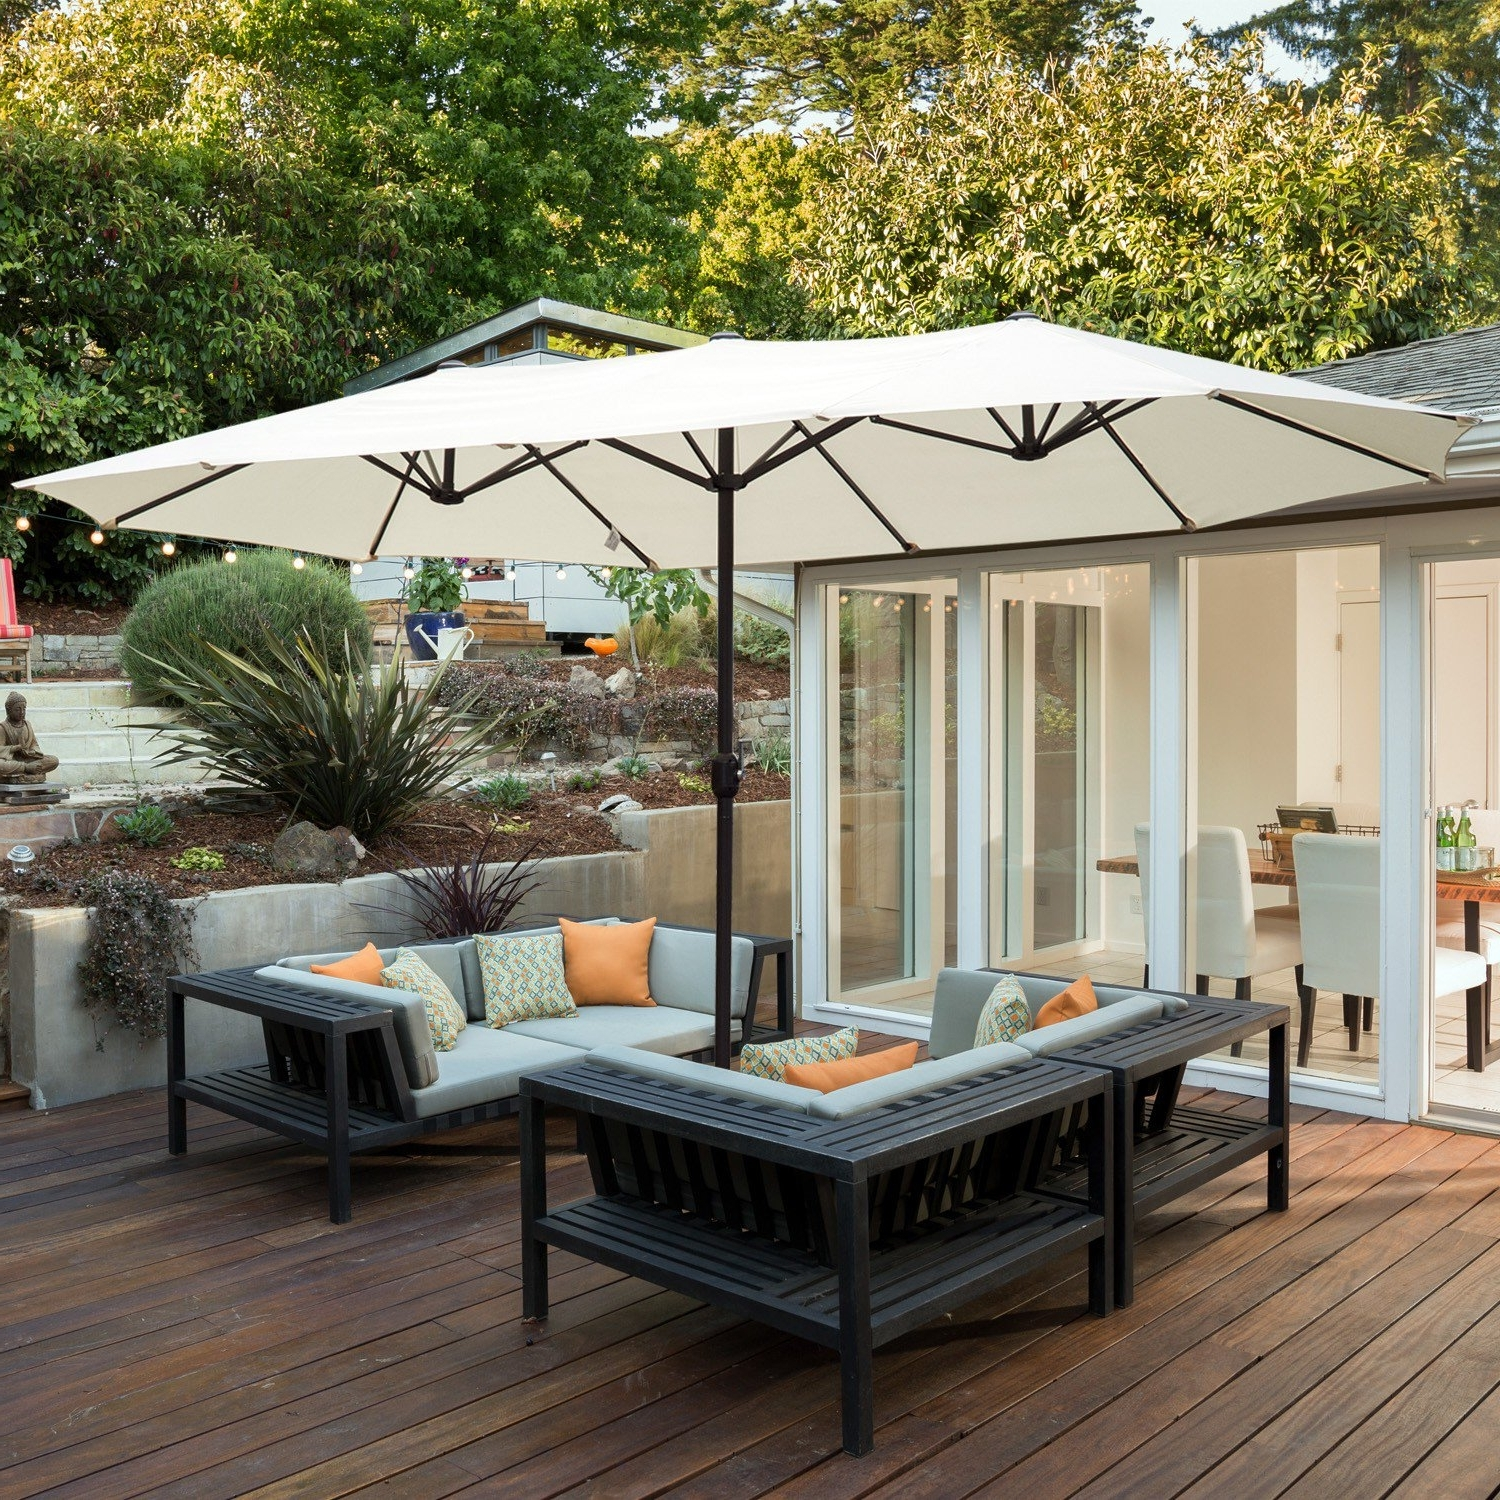 Recent Made In The Shade: 4 Ways To Add Backyard Sun Protection (Gallery 12 of 20)